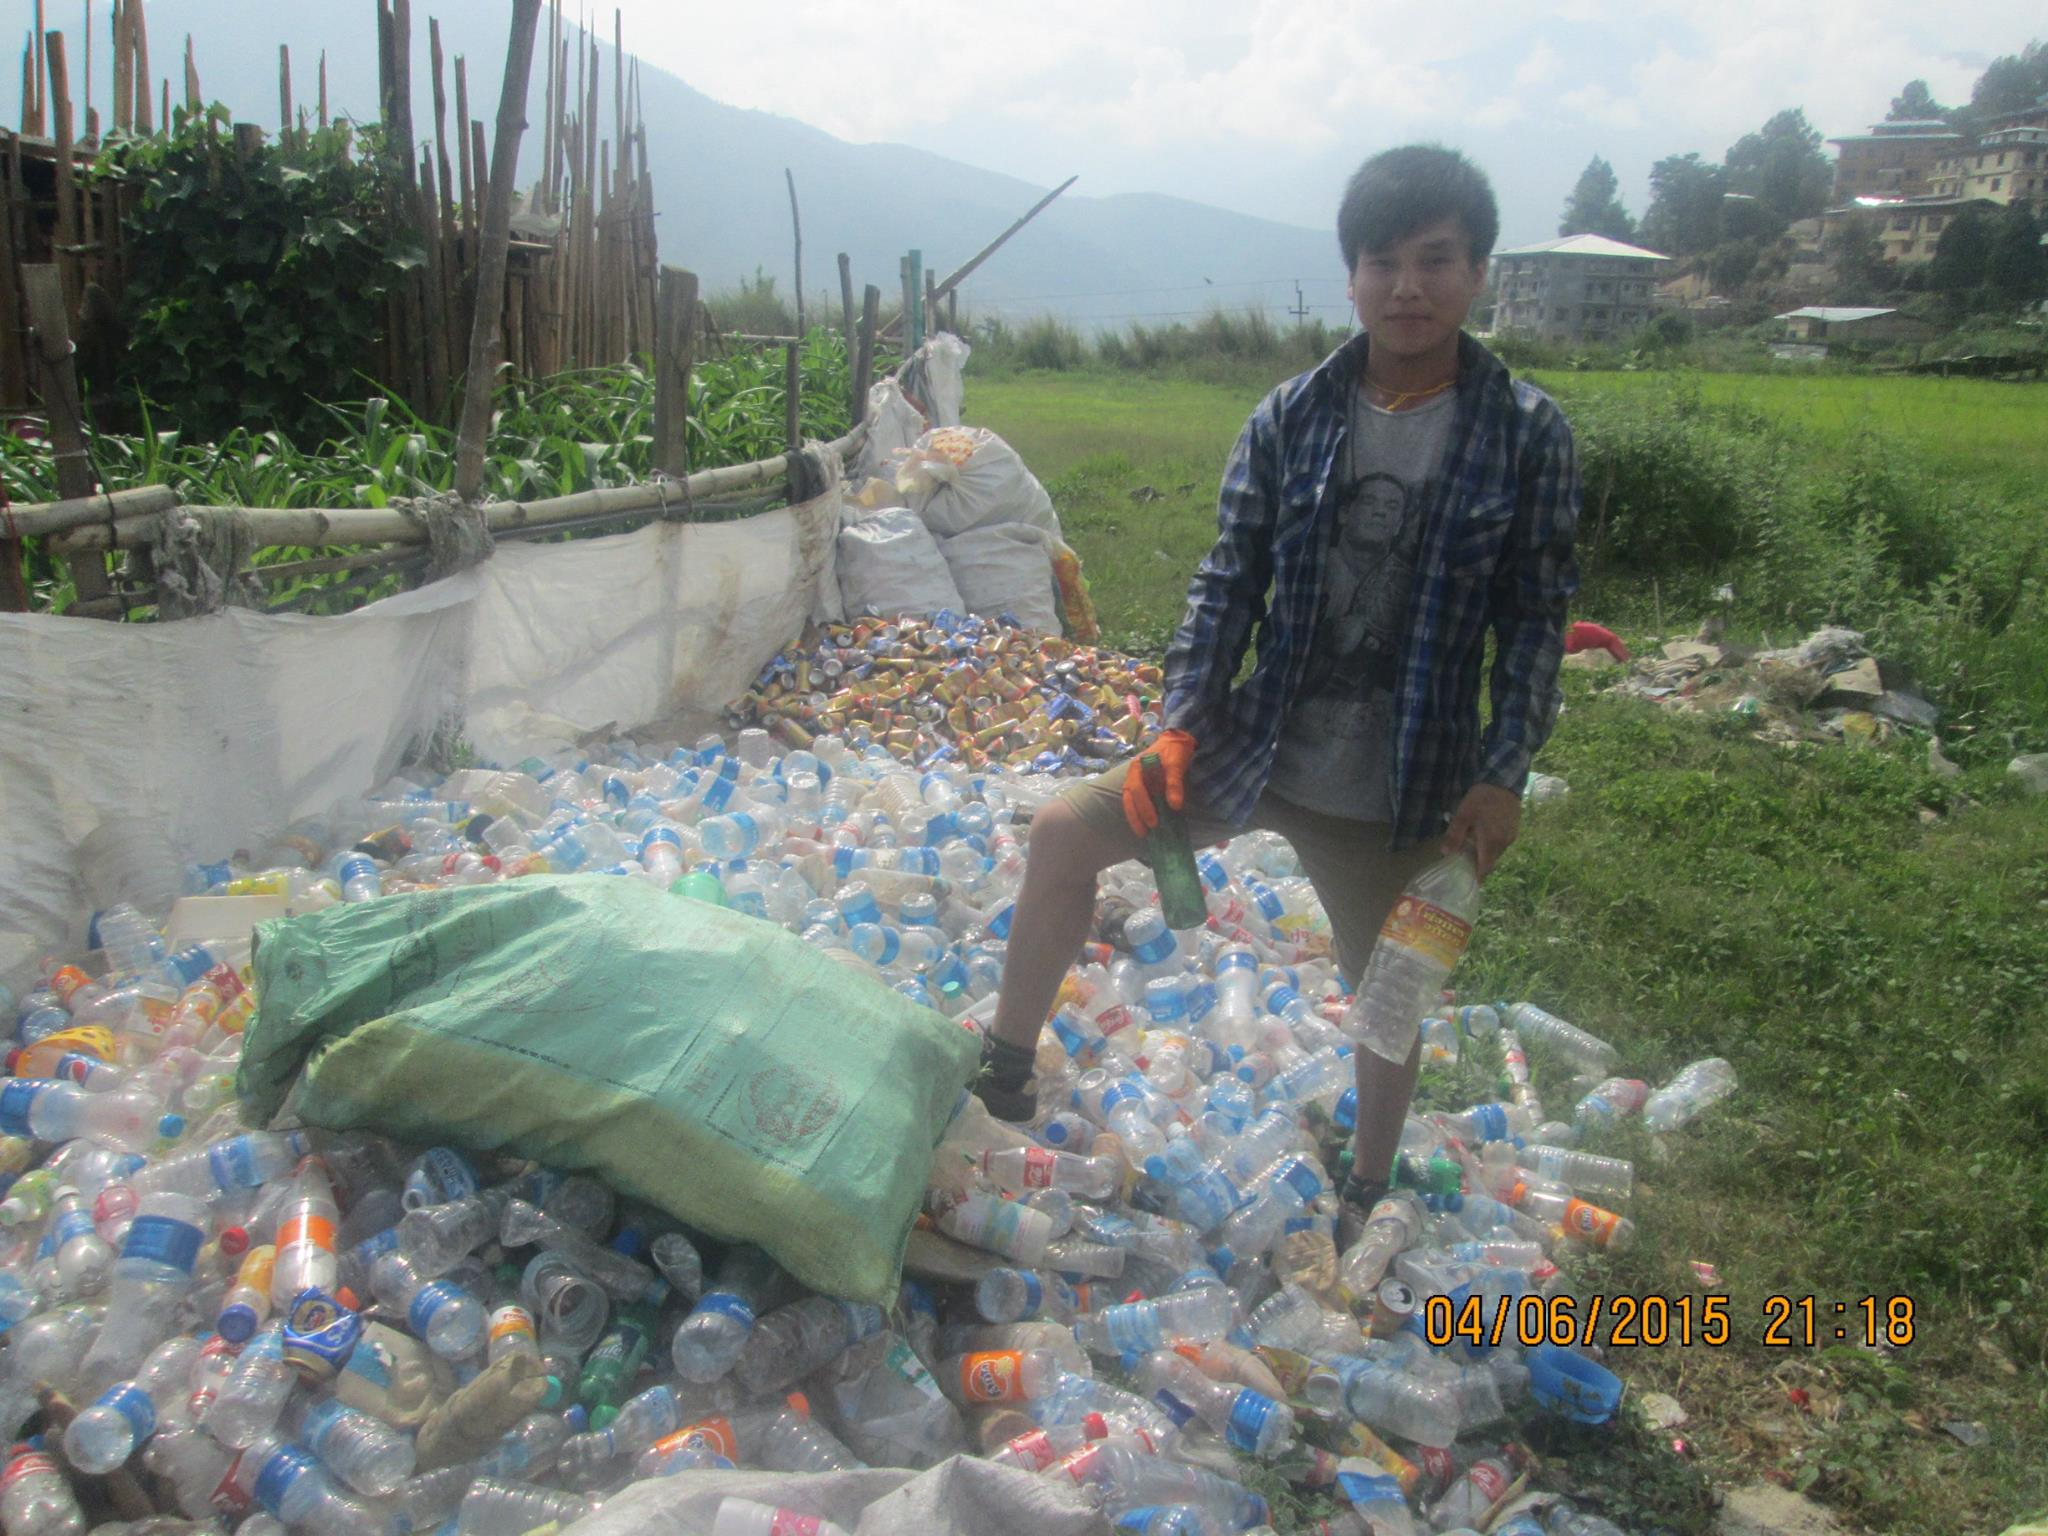 Earth Guardians Bhutan has done several clean ups where they separated recycling and made sure it went to the right facility to be properly recycled.